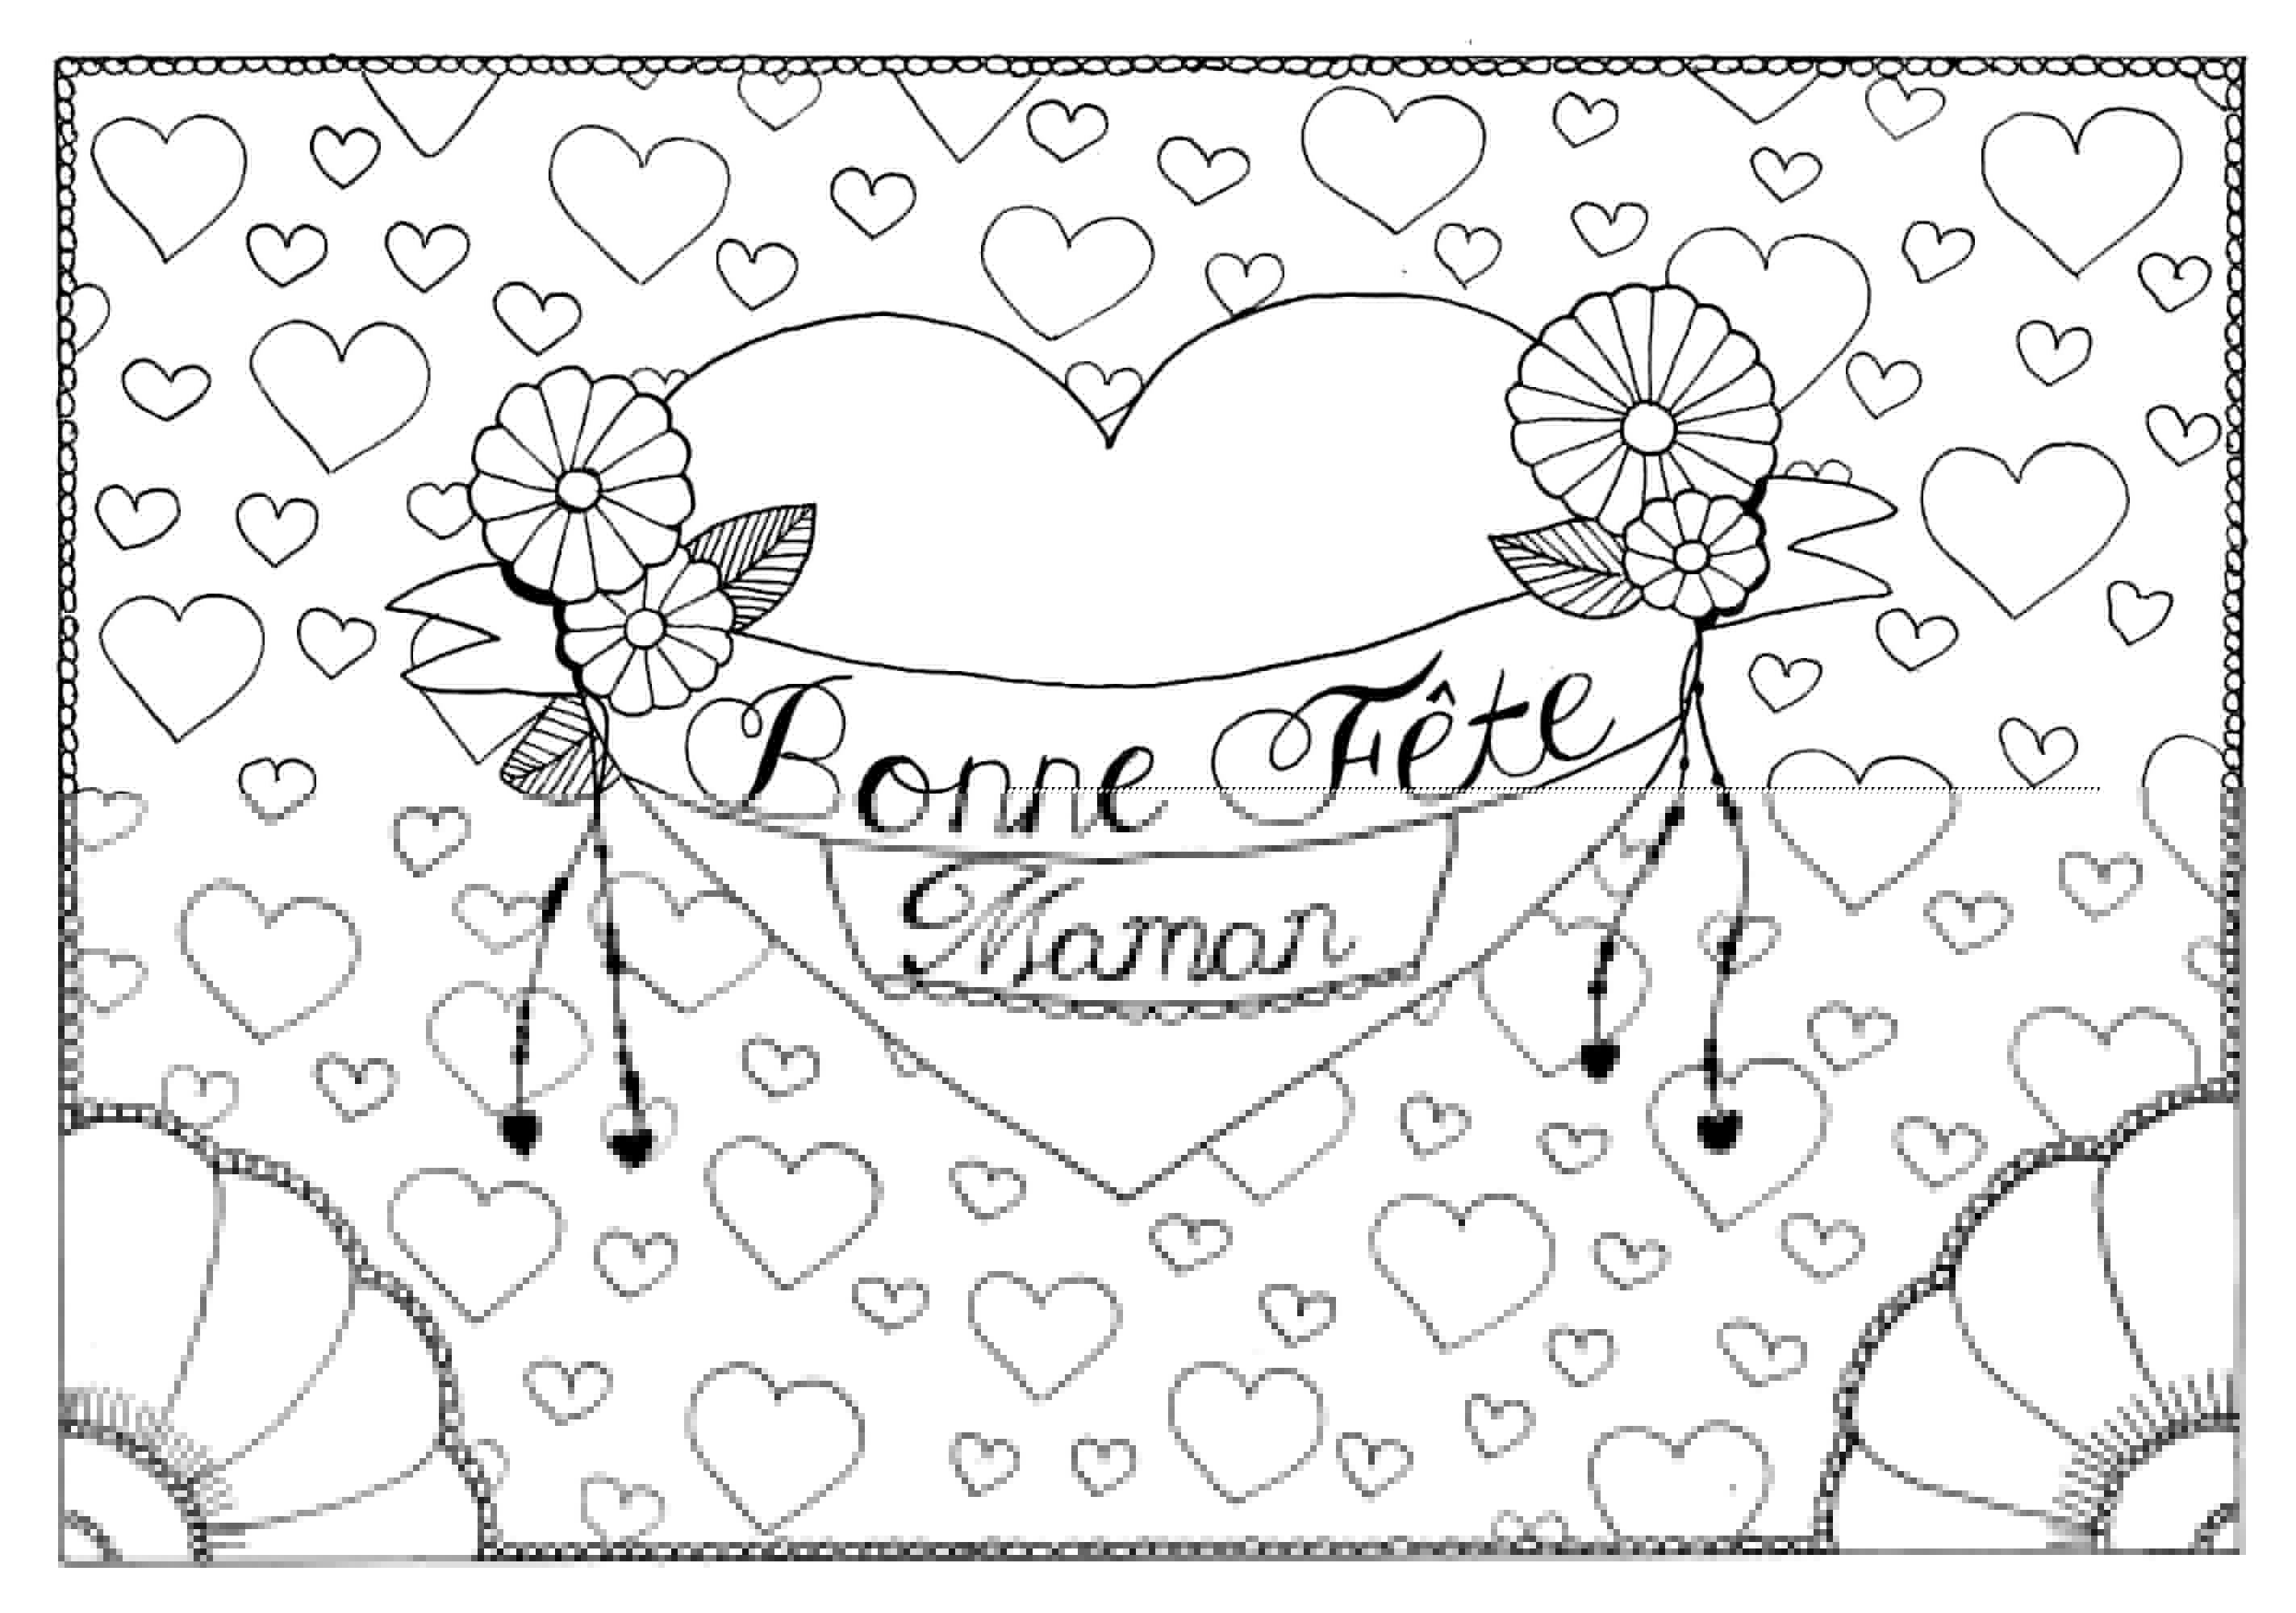 Coloring sheets for mothers day - Acoloring Page For The Mother S Day From The Gallery Events Celebrations Artist